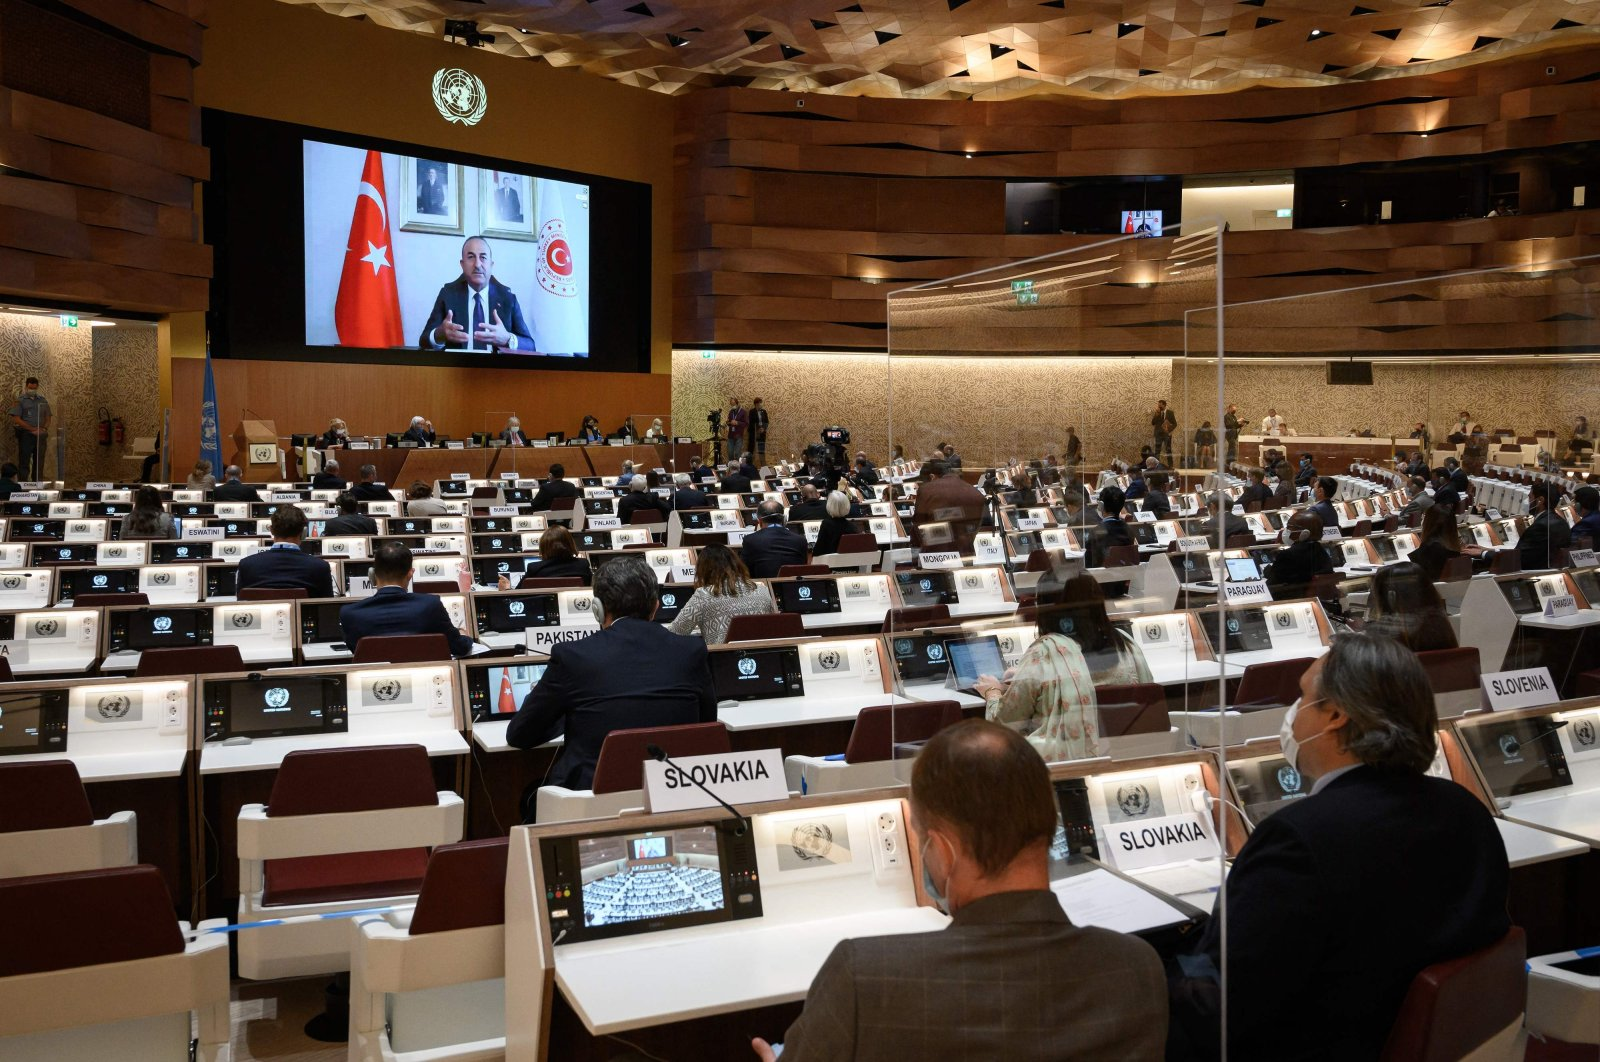 Delegates watch a remote speech by Turkish Foreign Minister Mevlüt Çavuşoğlu on a giant screen during an aid conference on Afghanistan, in Geneva, Switzerland, Sept. 13, 2021. (AFP Photo)